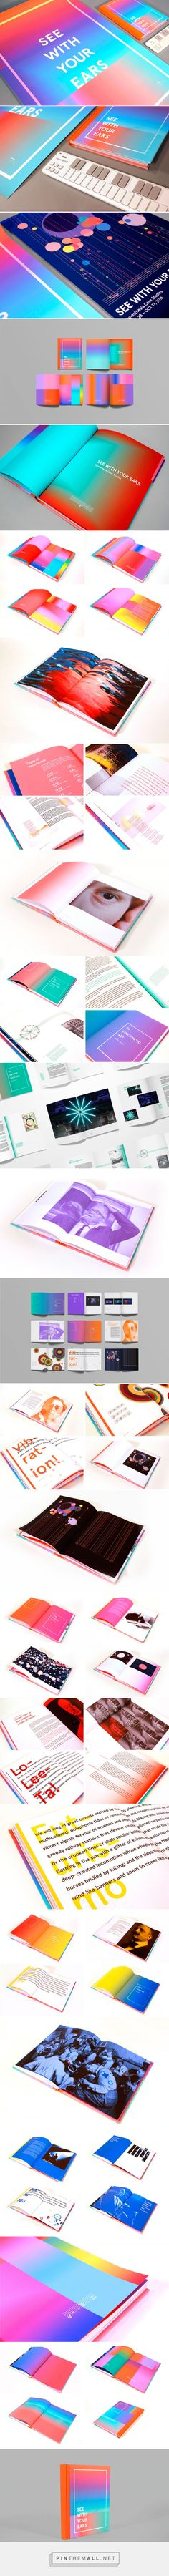 Graphisms , Typography , Infographics and Design - Gallery of pins created with pin them all : multiple images and text pins - Pin . Web Design, Layout Design, Print Design, Bts Design Graphique, Art Graphique, Packaging Design, Branding Design, Logo Design, Design Editorial